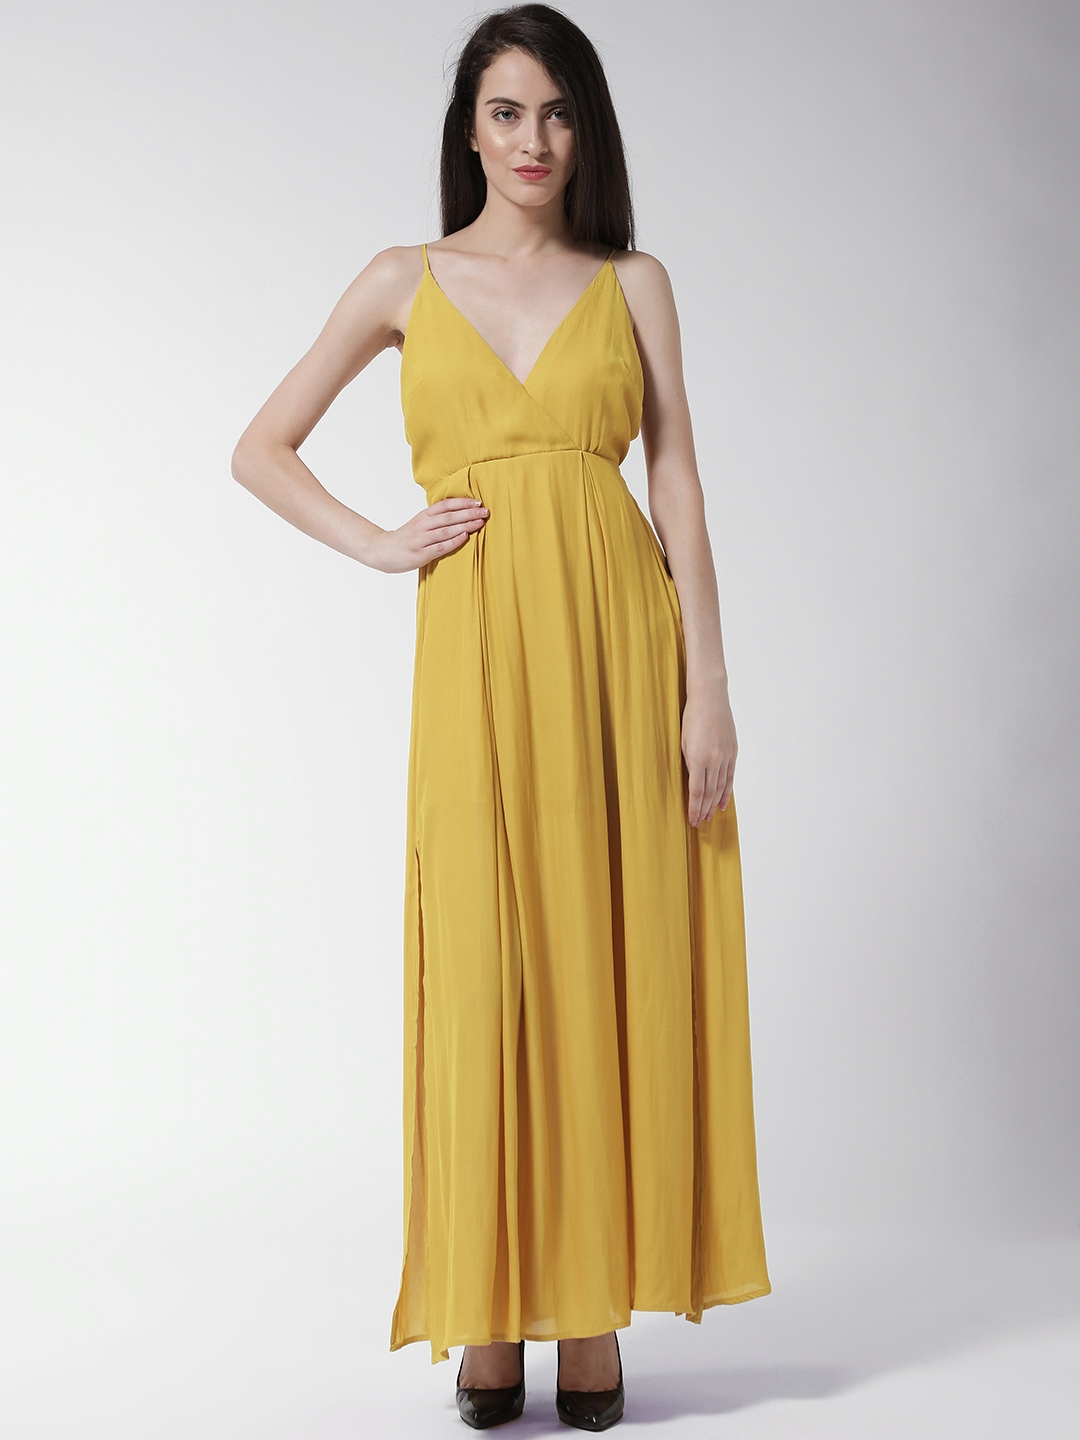 3a6fe0980b7 Buy FOREVER 21 Women Mustard Yellow Solid Maxi Dress - Dresses for ...